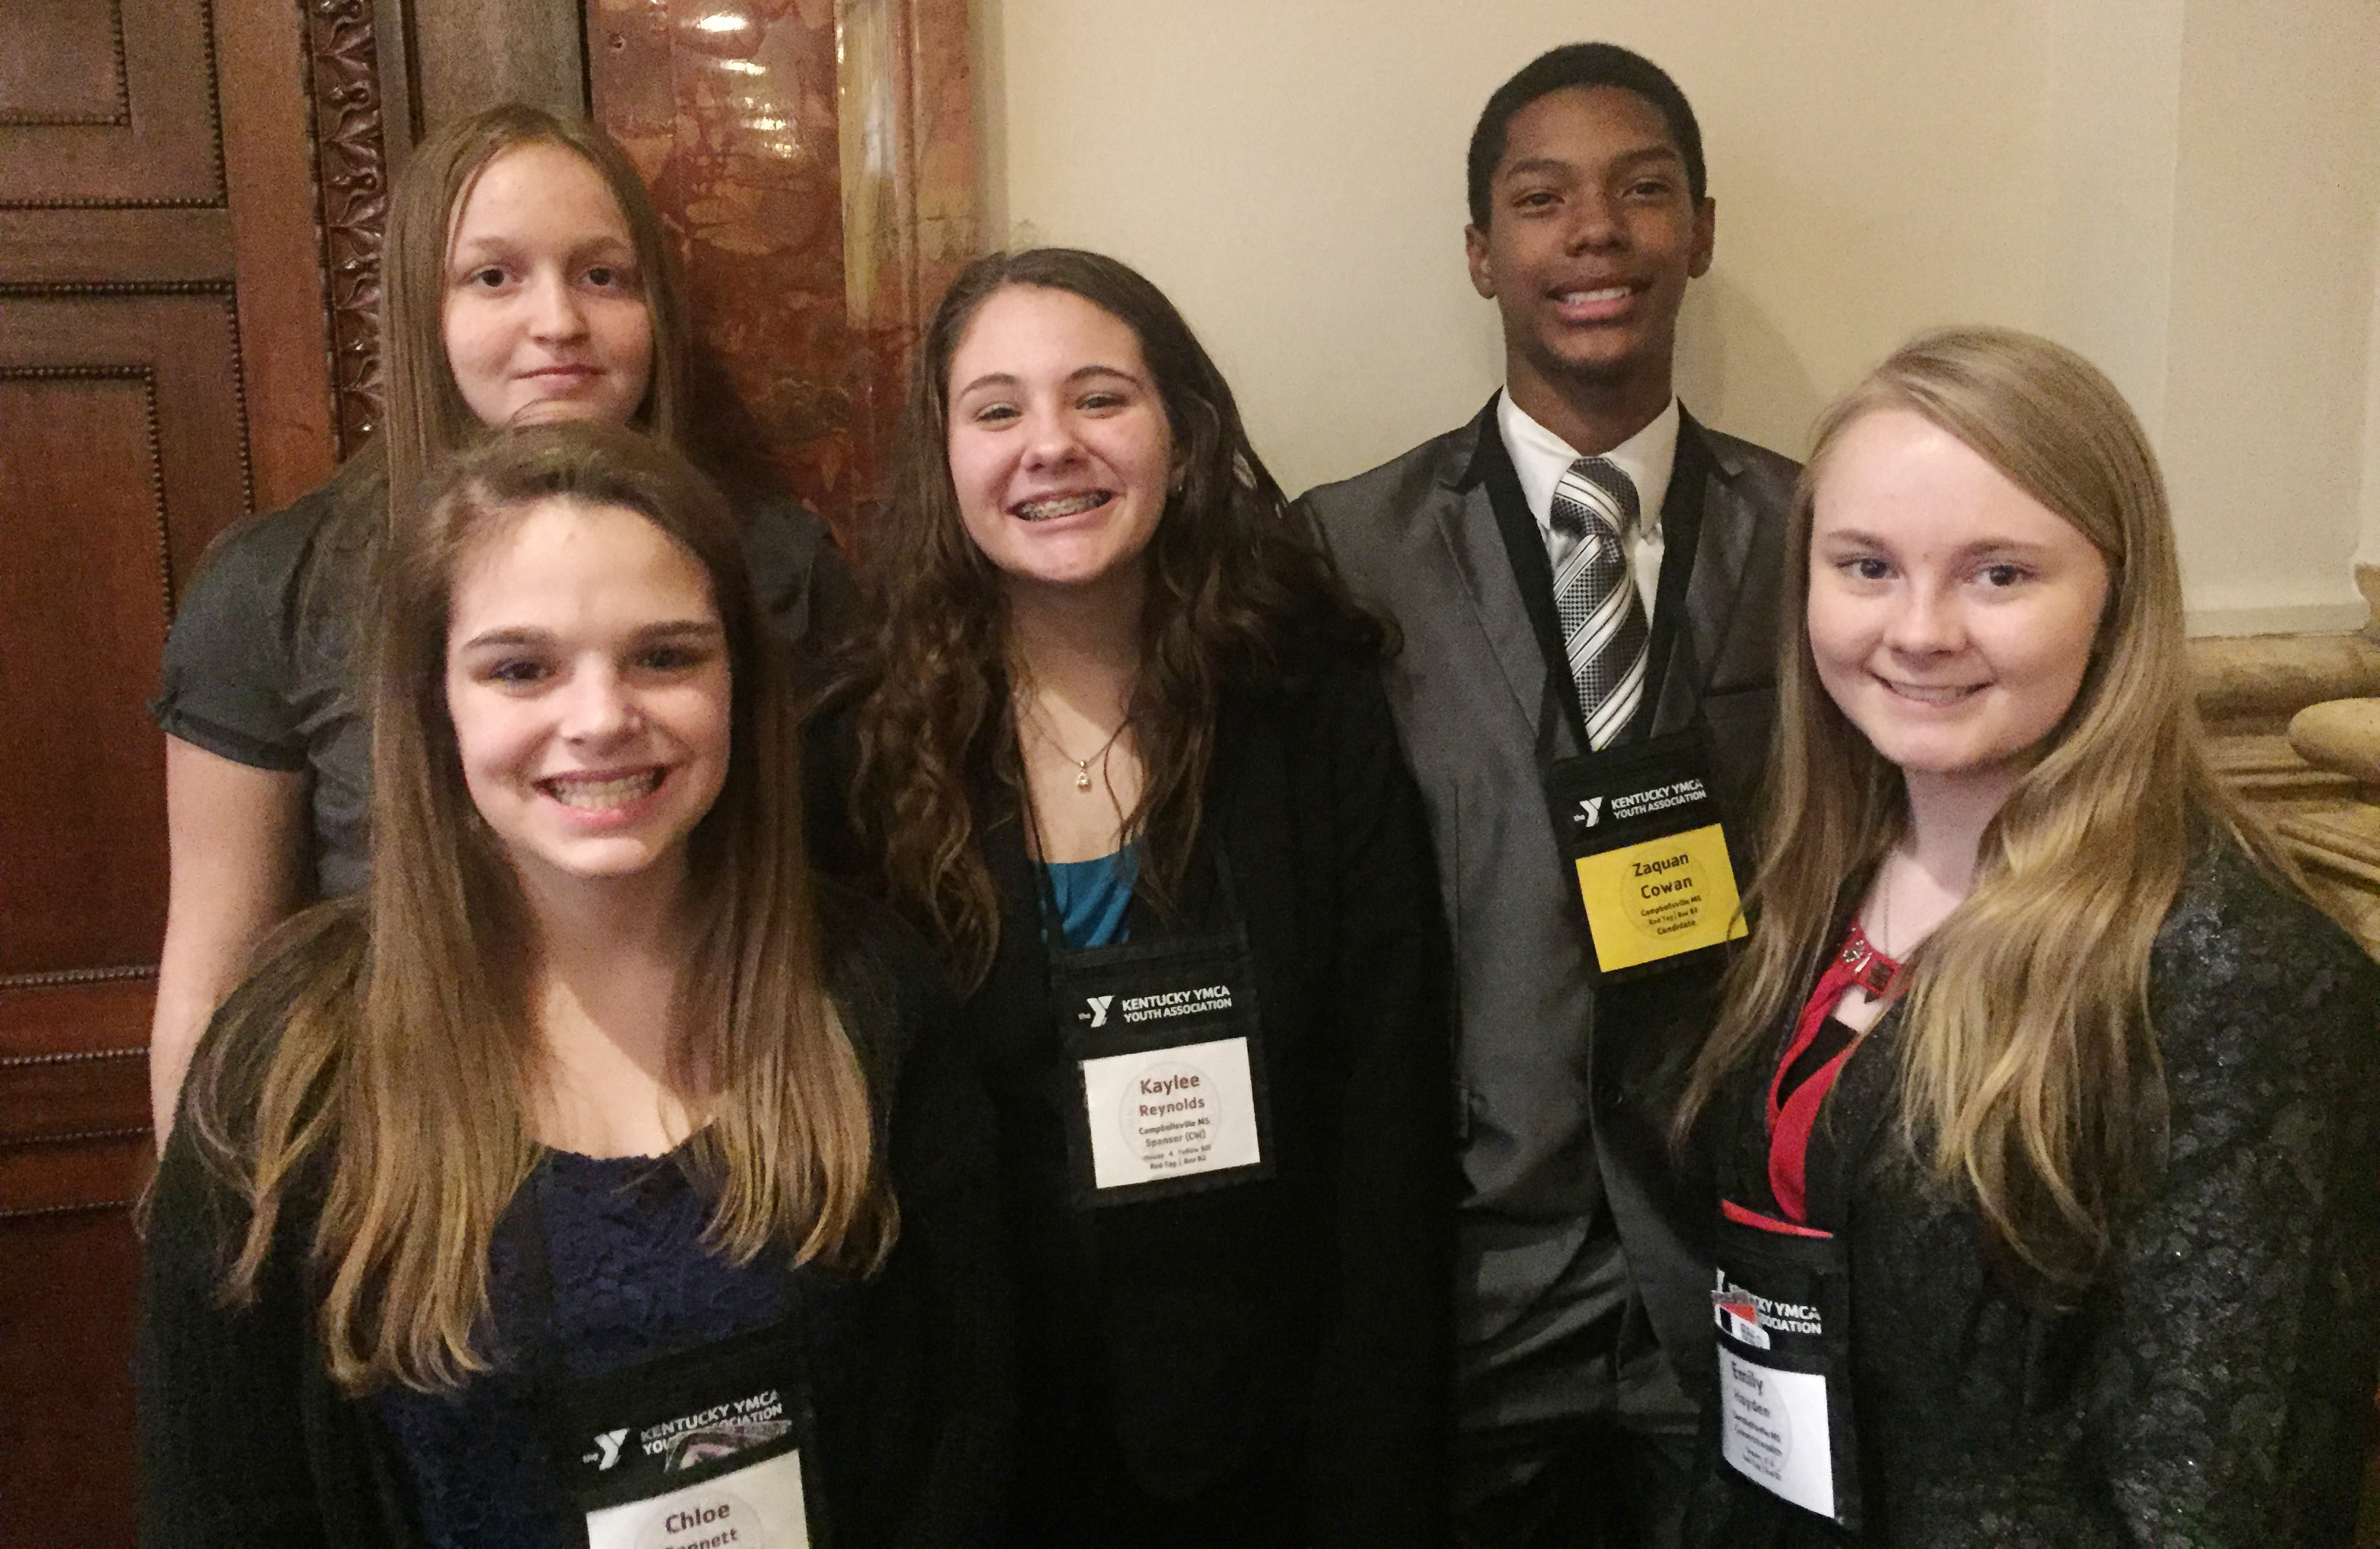 From left, CMS eighth-graders attending KYA include Chloe Bennett, Destiny Hicks, Kaylee Reynolds, Zaquan Cowan and Emily Hayden. Absent from the photo is Abi Wiedewitsch.